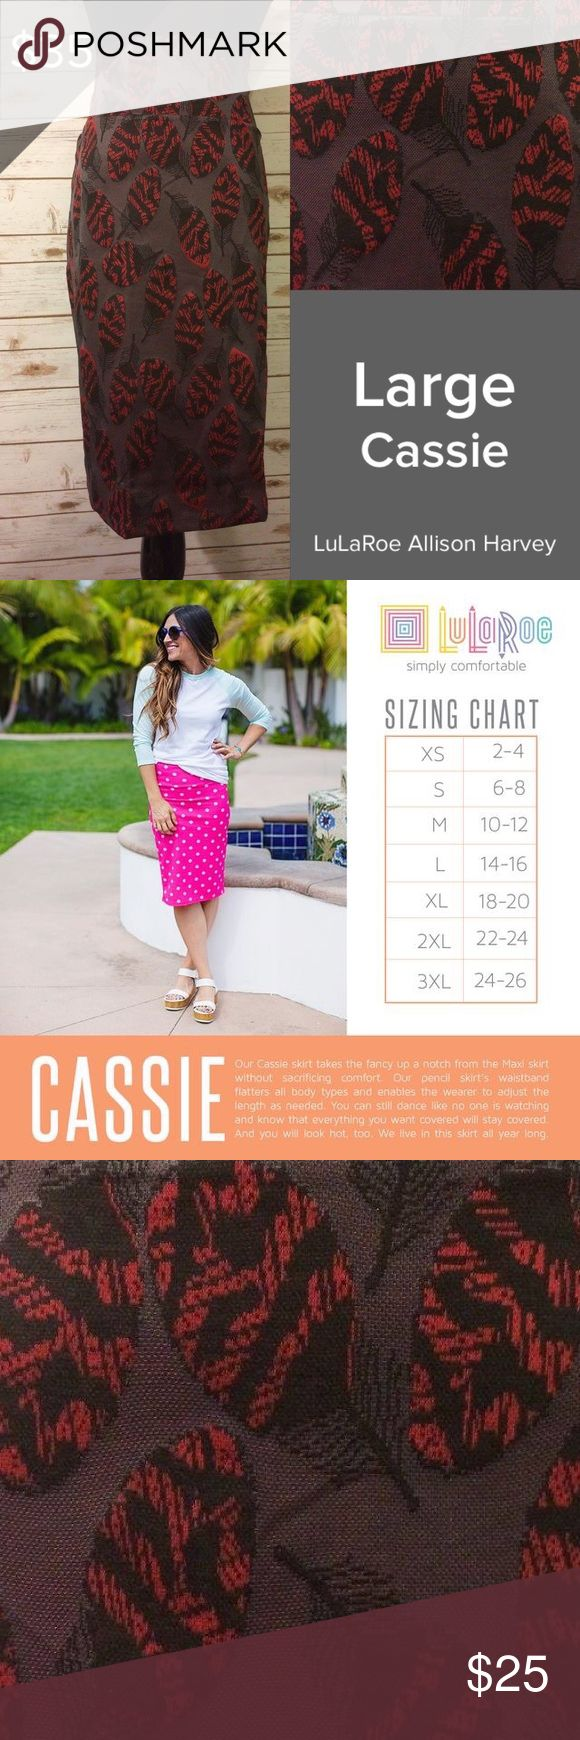 Large LuLaRoe Cassie Skirt - BNWT Never worn, perfect condition! Leaf print pencil skirt - 97% polyester, 3% spandex. Less stretchy than the average LLR Cassie. Maroon-ish gray background, super pretty and unique! LuLaRoe Skirts Pencil